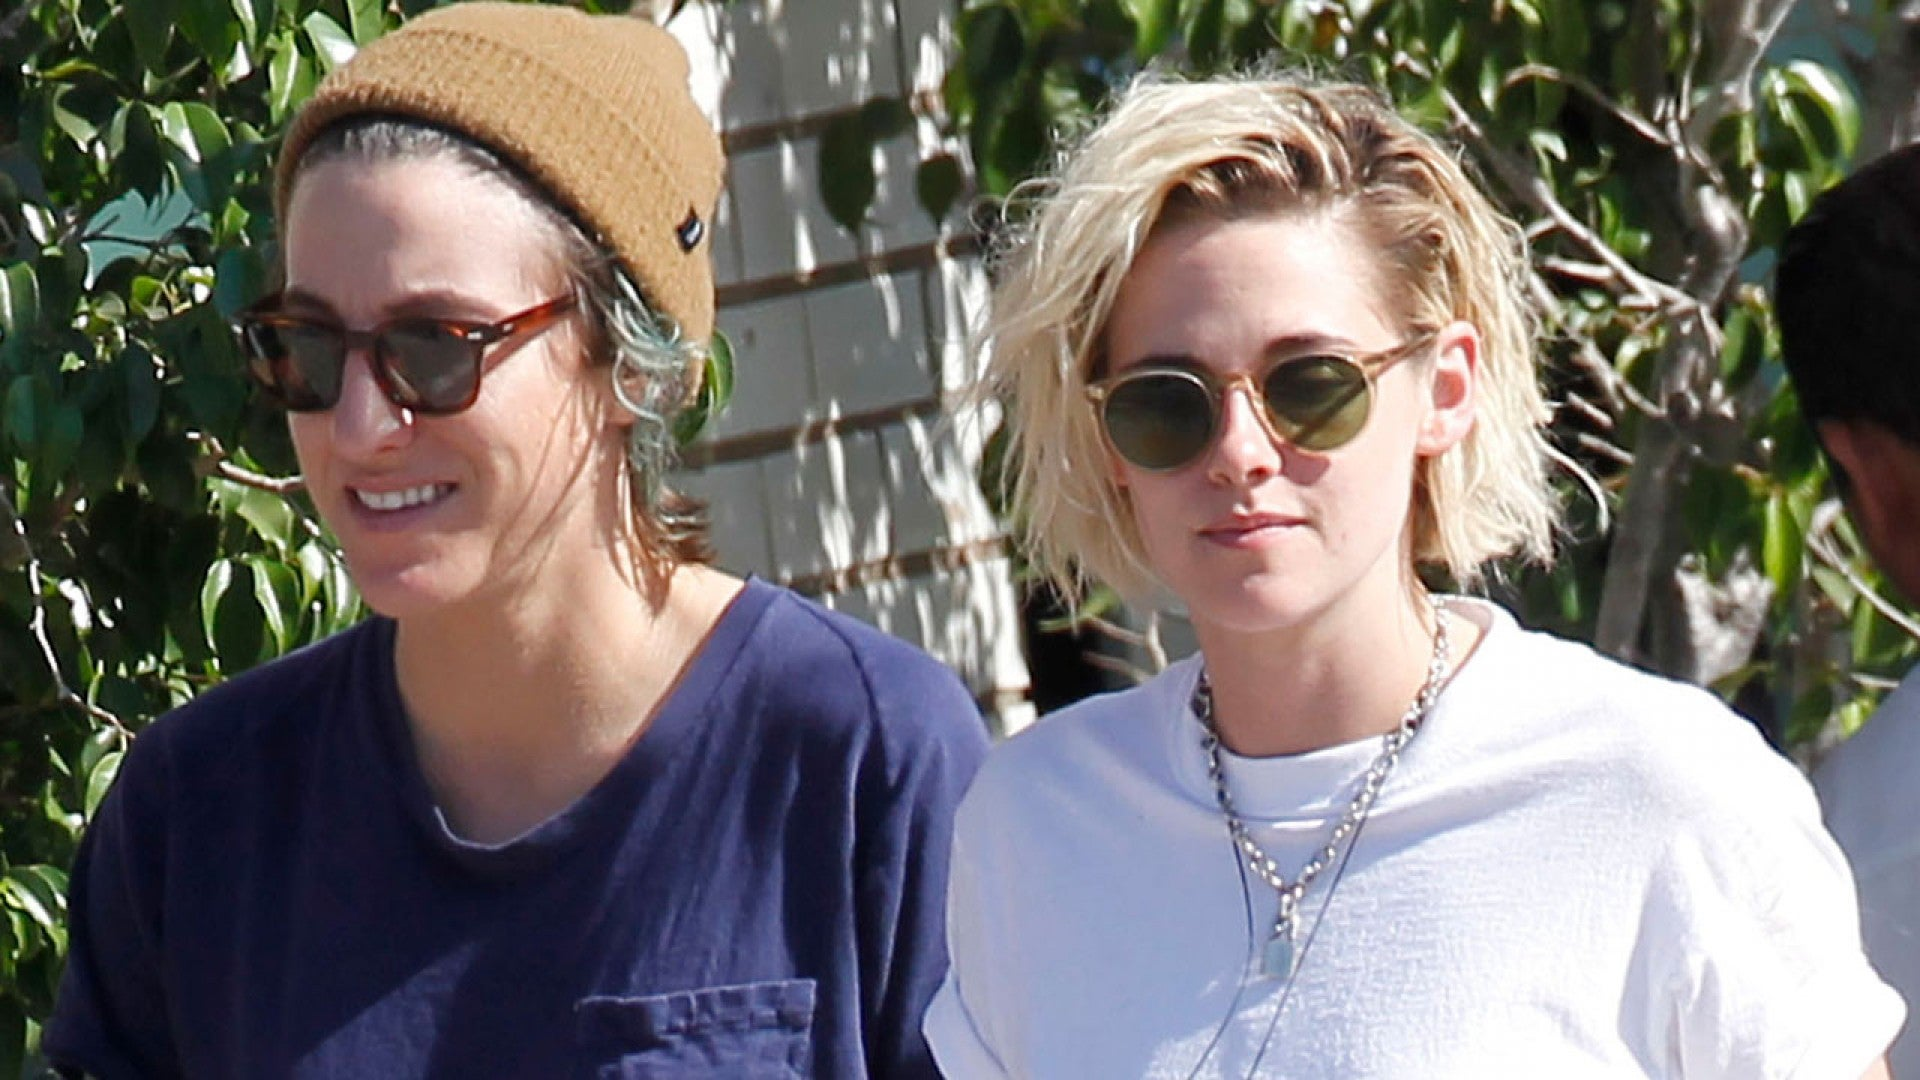 Alicia Smiles kristen stewart holds hands and smiles on sushi date with